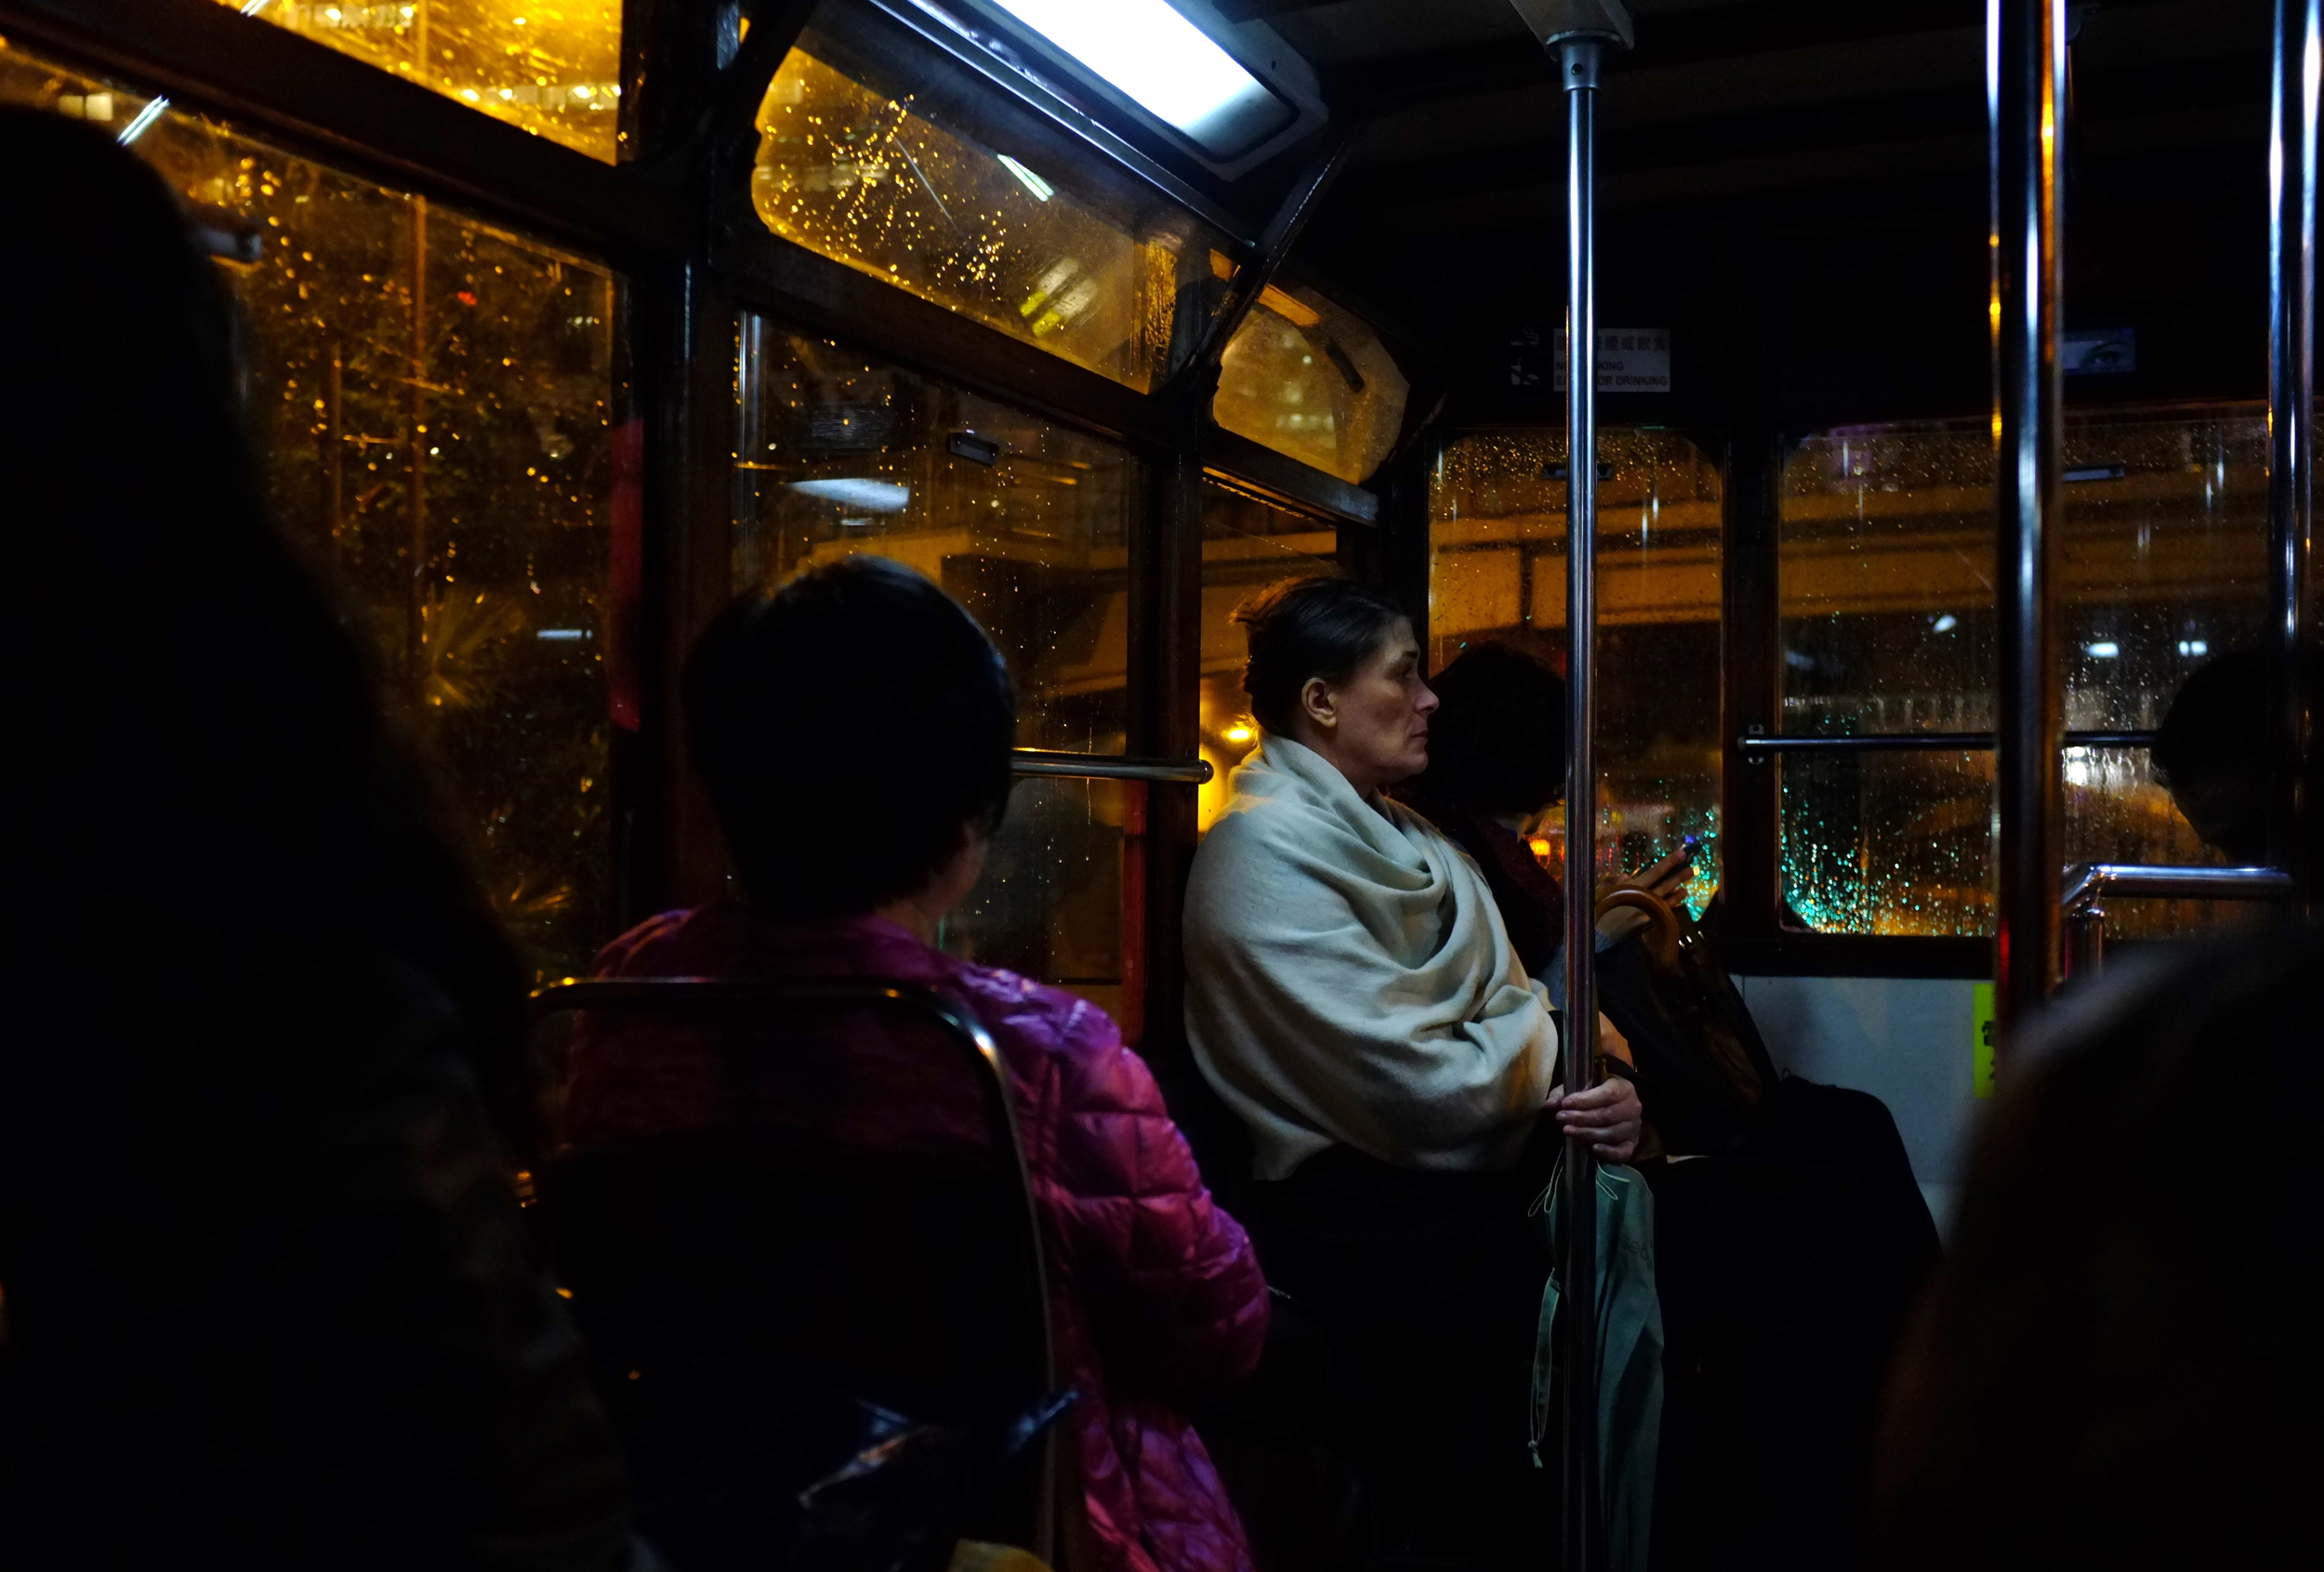 On the trolley, Central